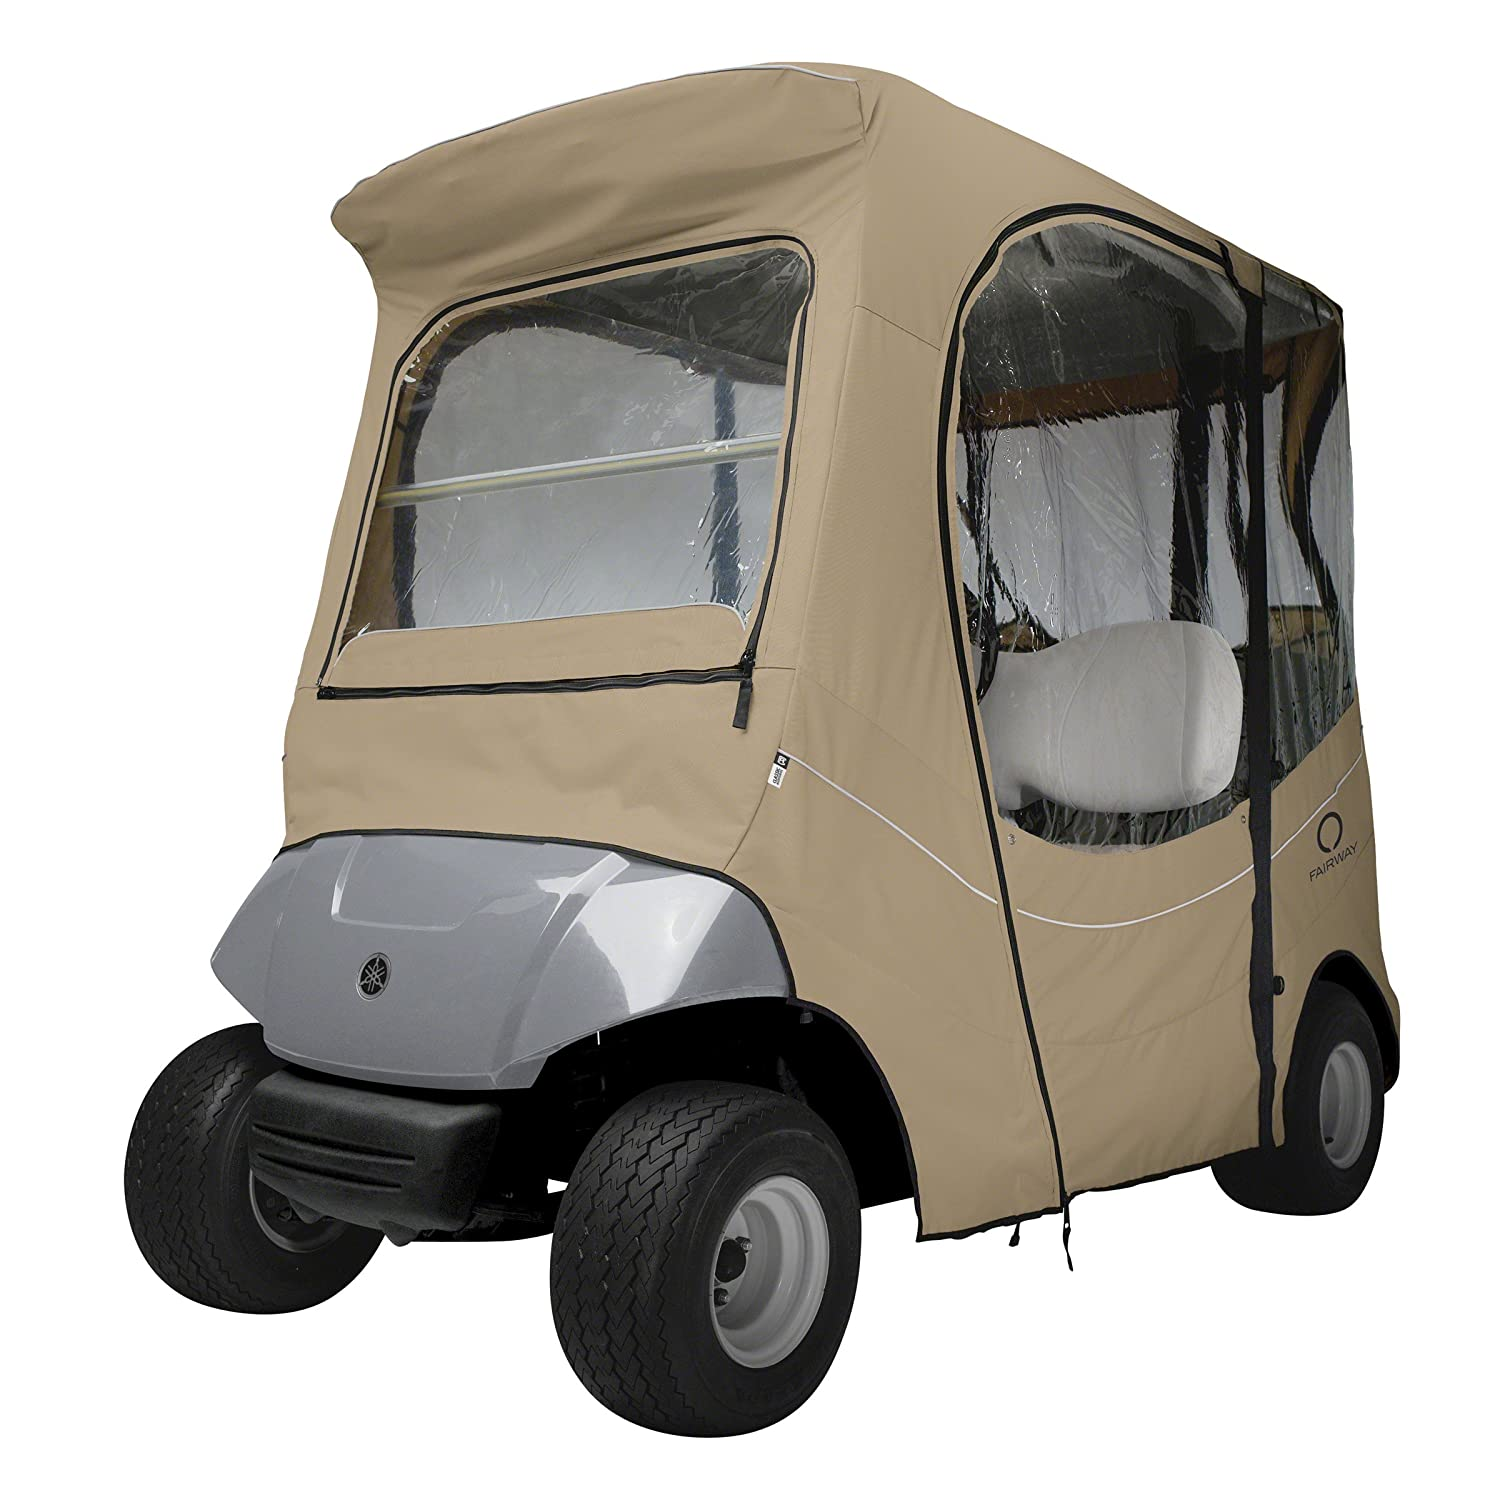 yamaha golf carts. amazon.com : classic accessories fairway golf cart fadesafe enclosure for yamaha, short roof, khaki sports \u0026 outdoors yamaha carts